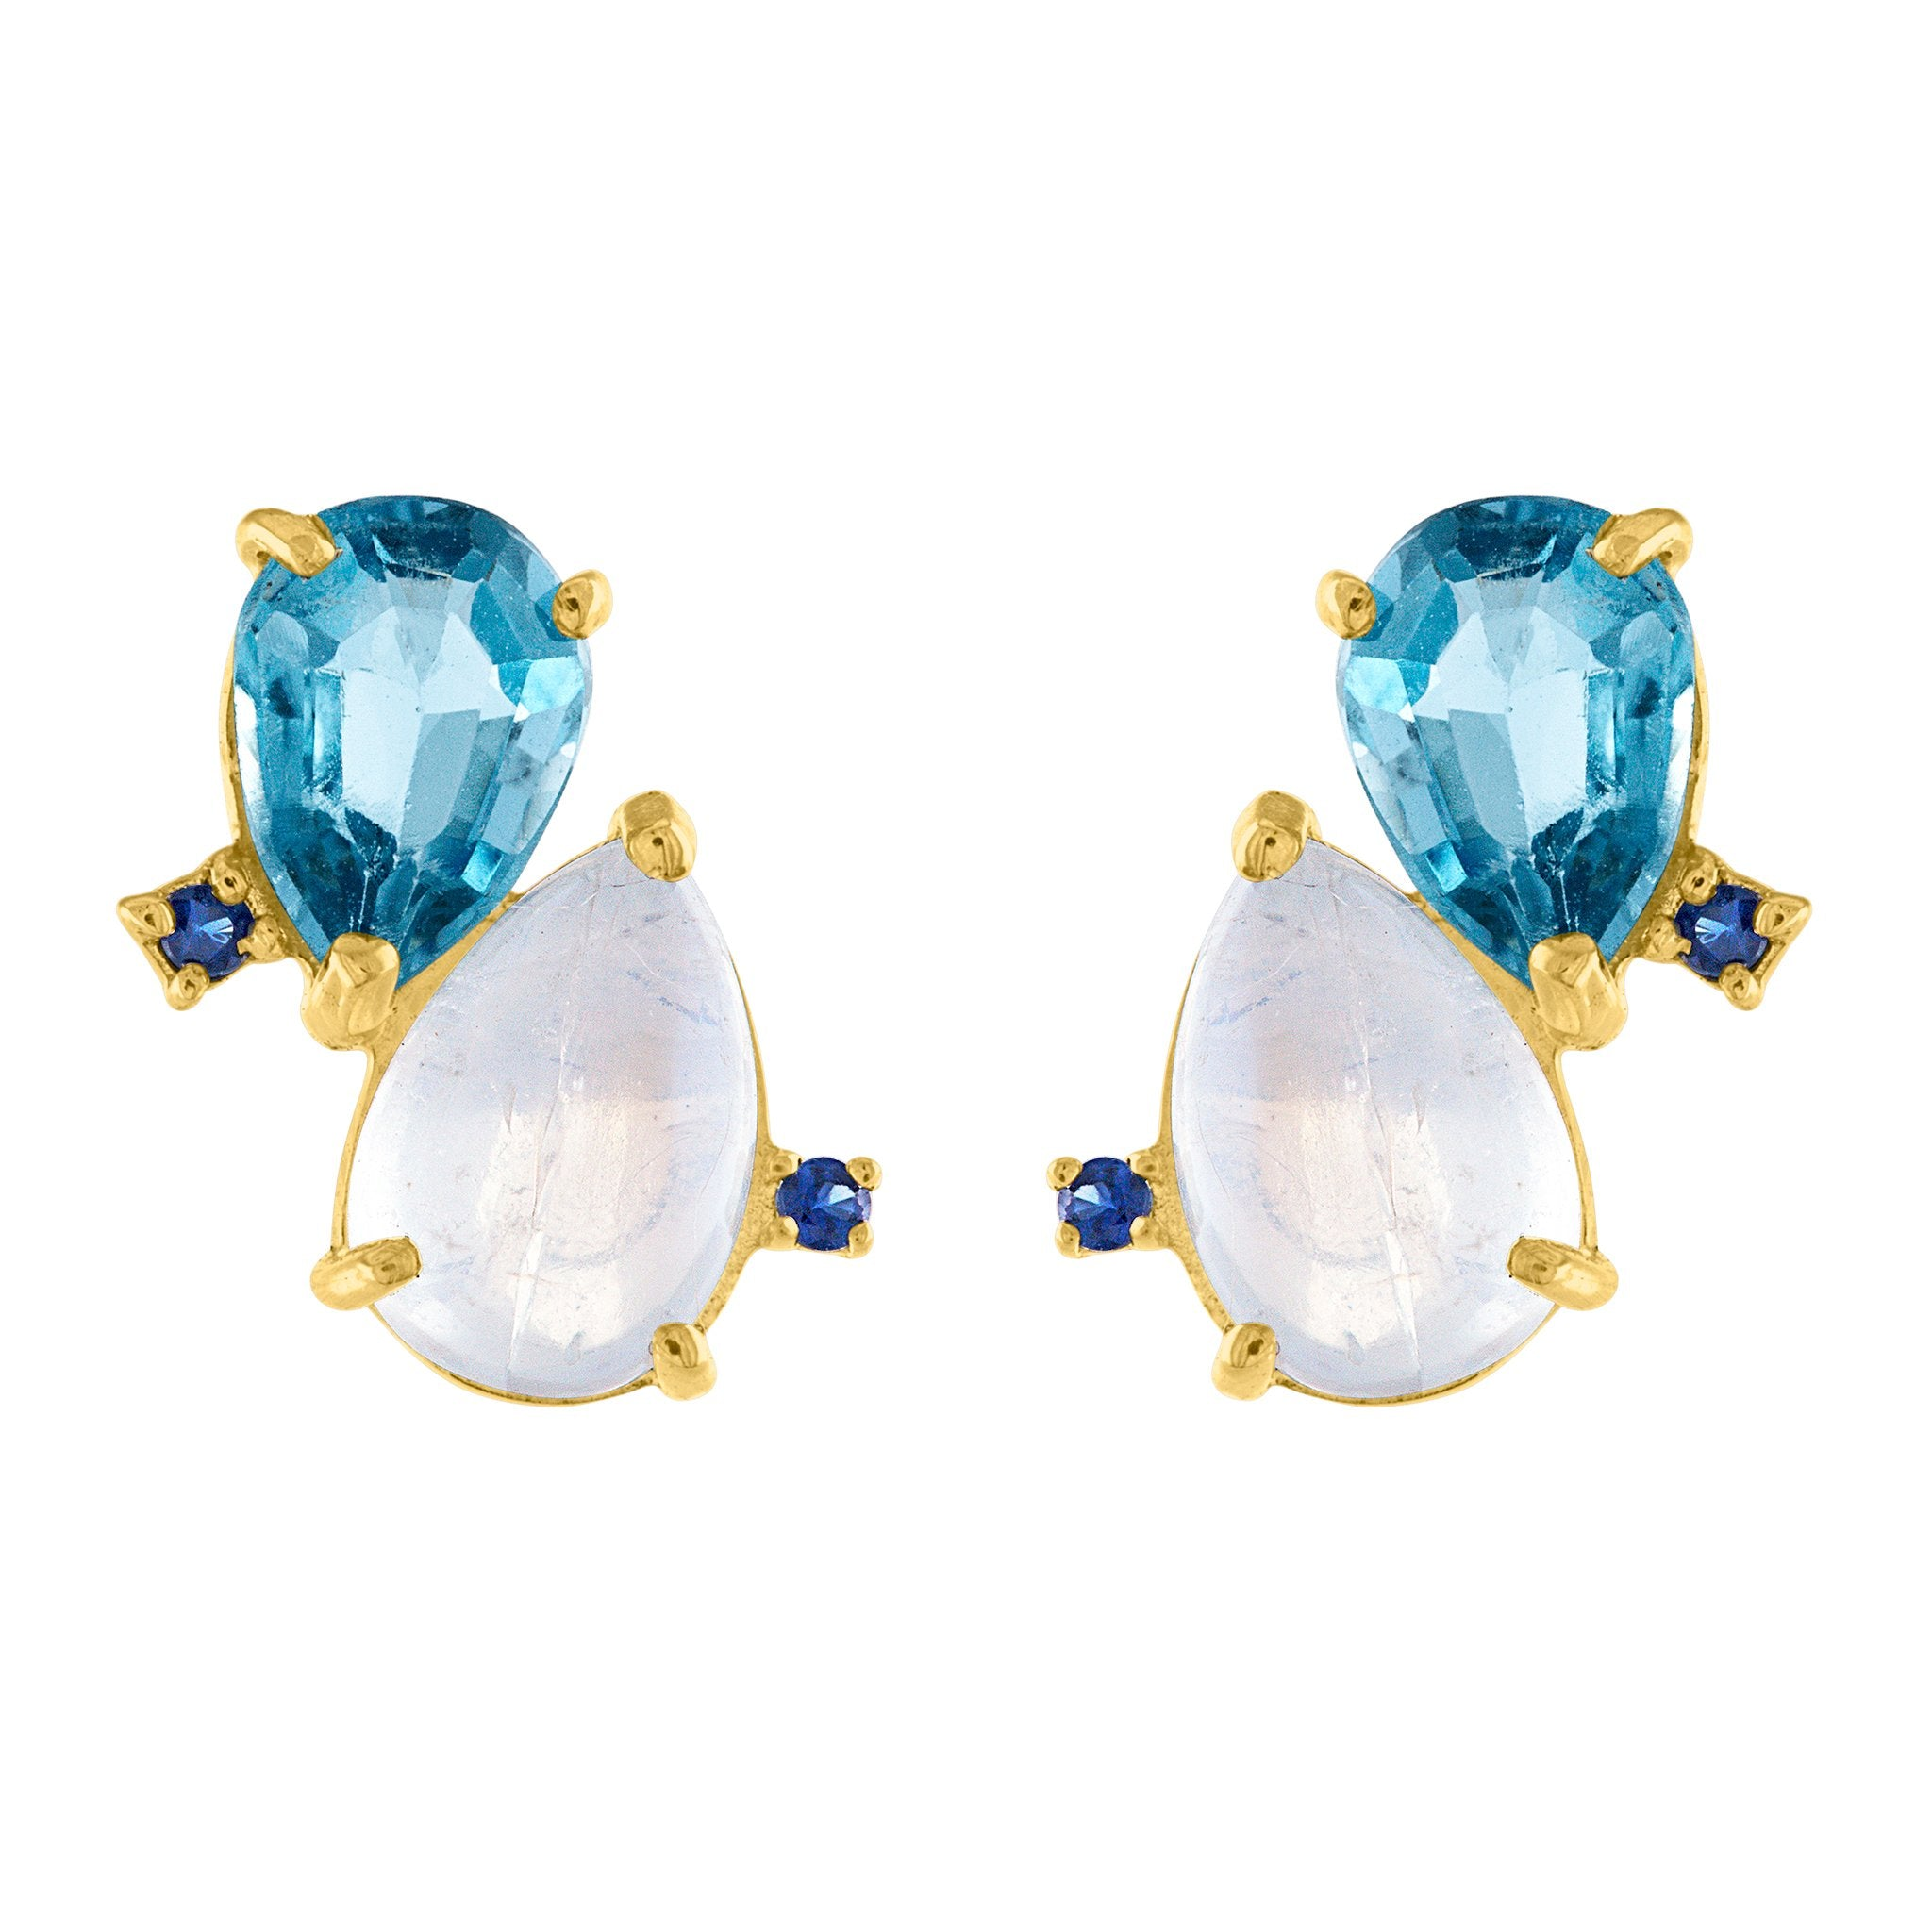 Coud Stud Earrings: 14k Gold, Moonstone, London Blue Topaz, Blue Sapphire